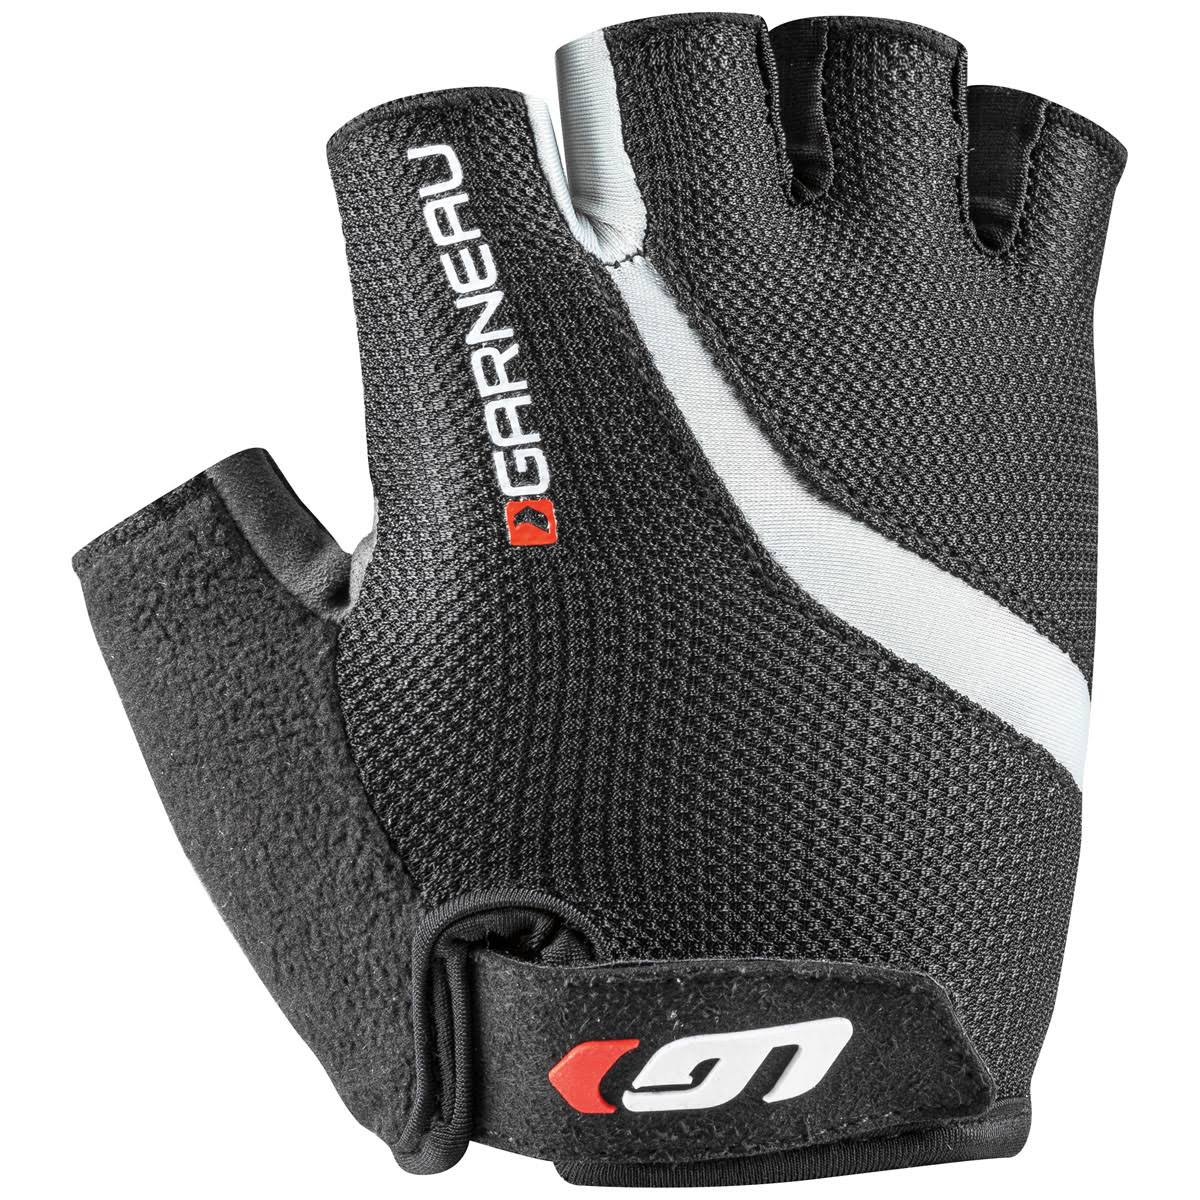 Louis Garneau Women's Biogel RX-V Bike Gloves - Black, Medium